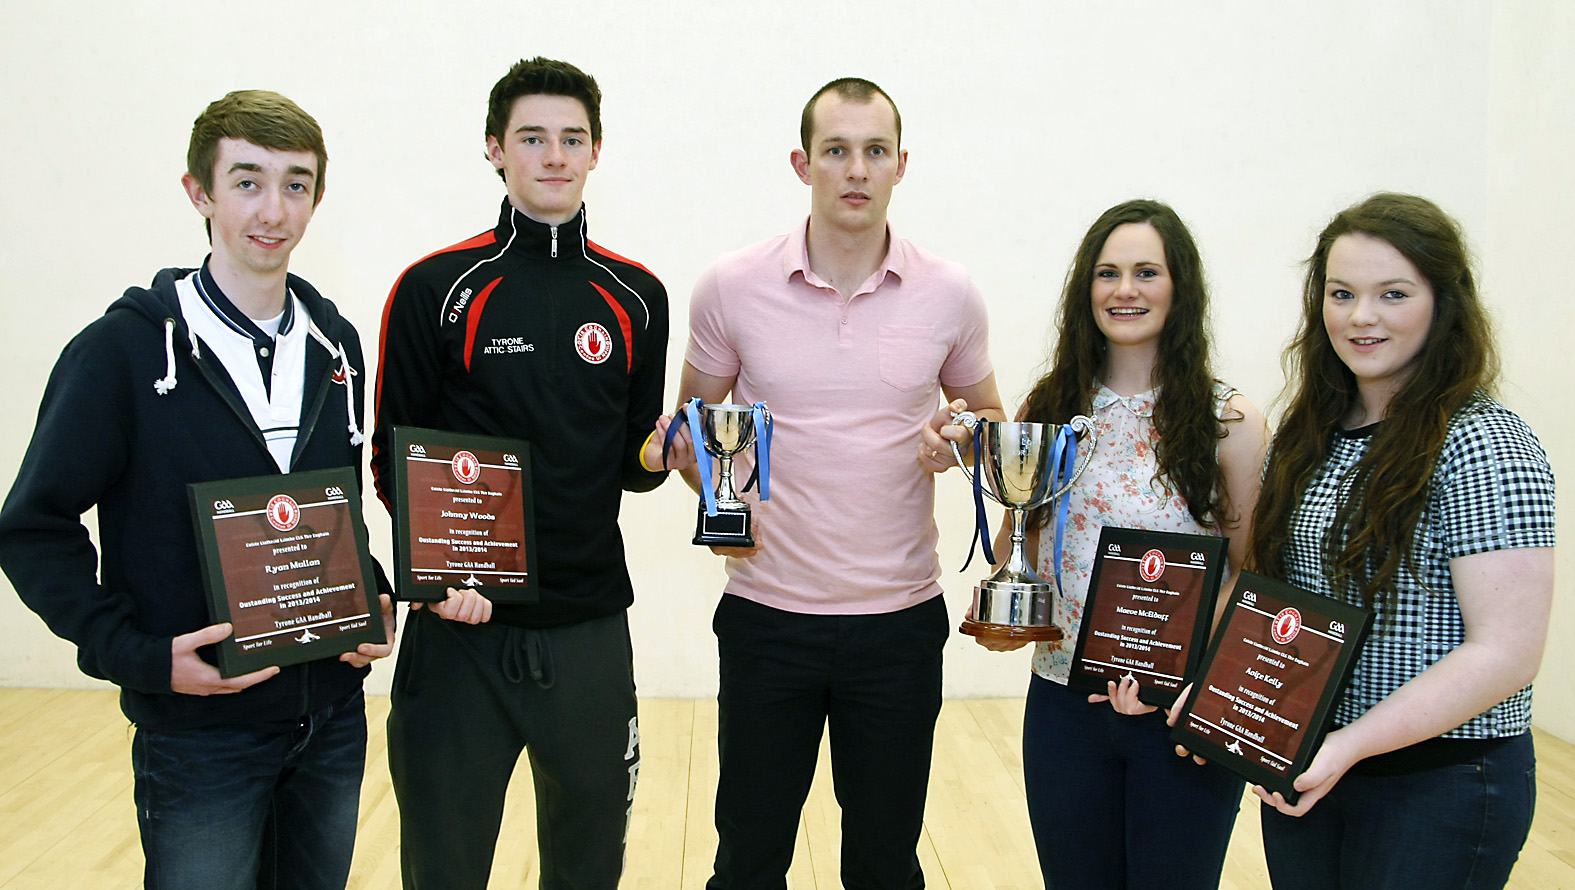 Tyrone GAA Handball celebrate outstanding year of success